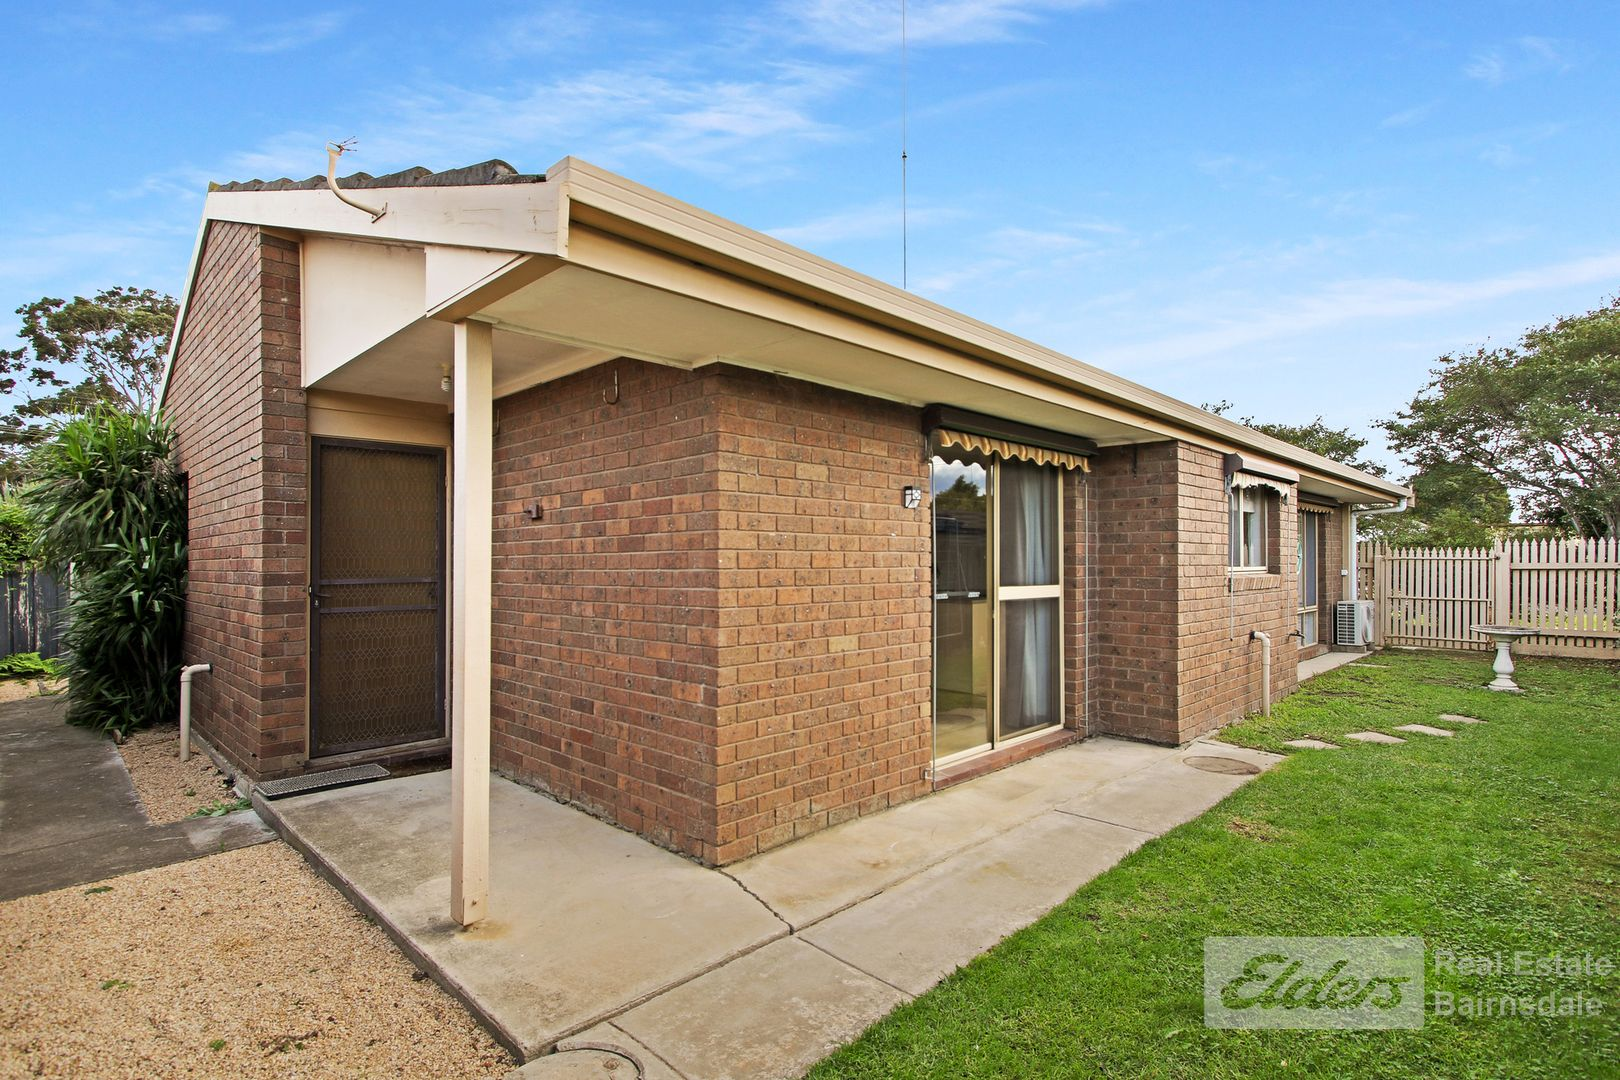 3/104 Wallace  Street, Bairnsdale VIC 3875, Image 0